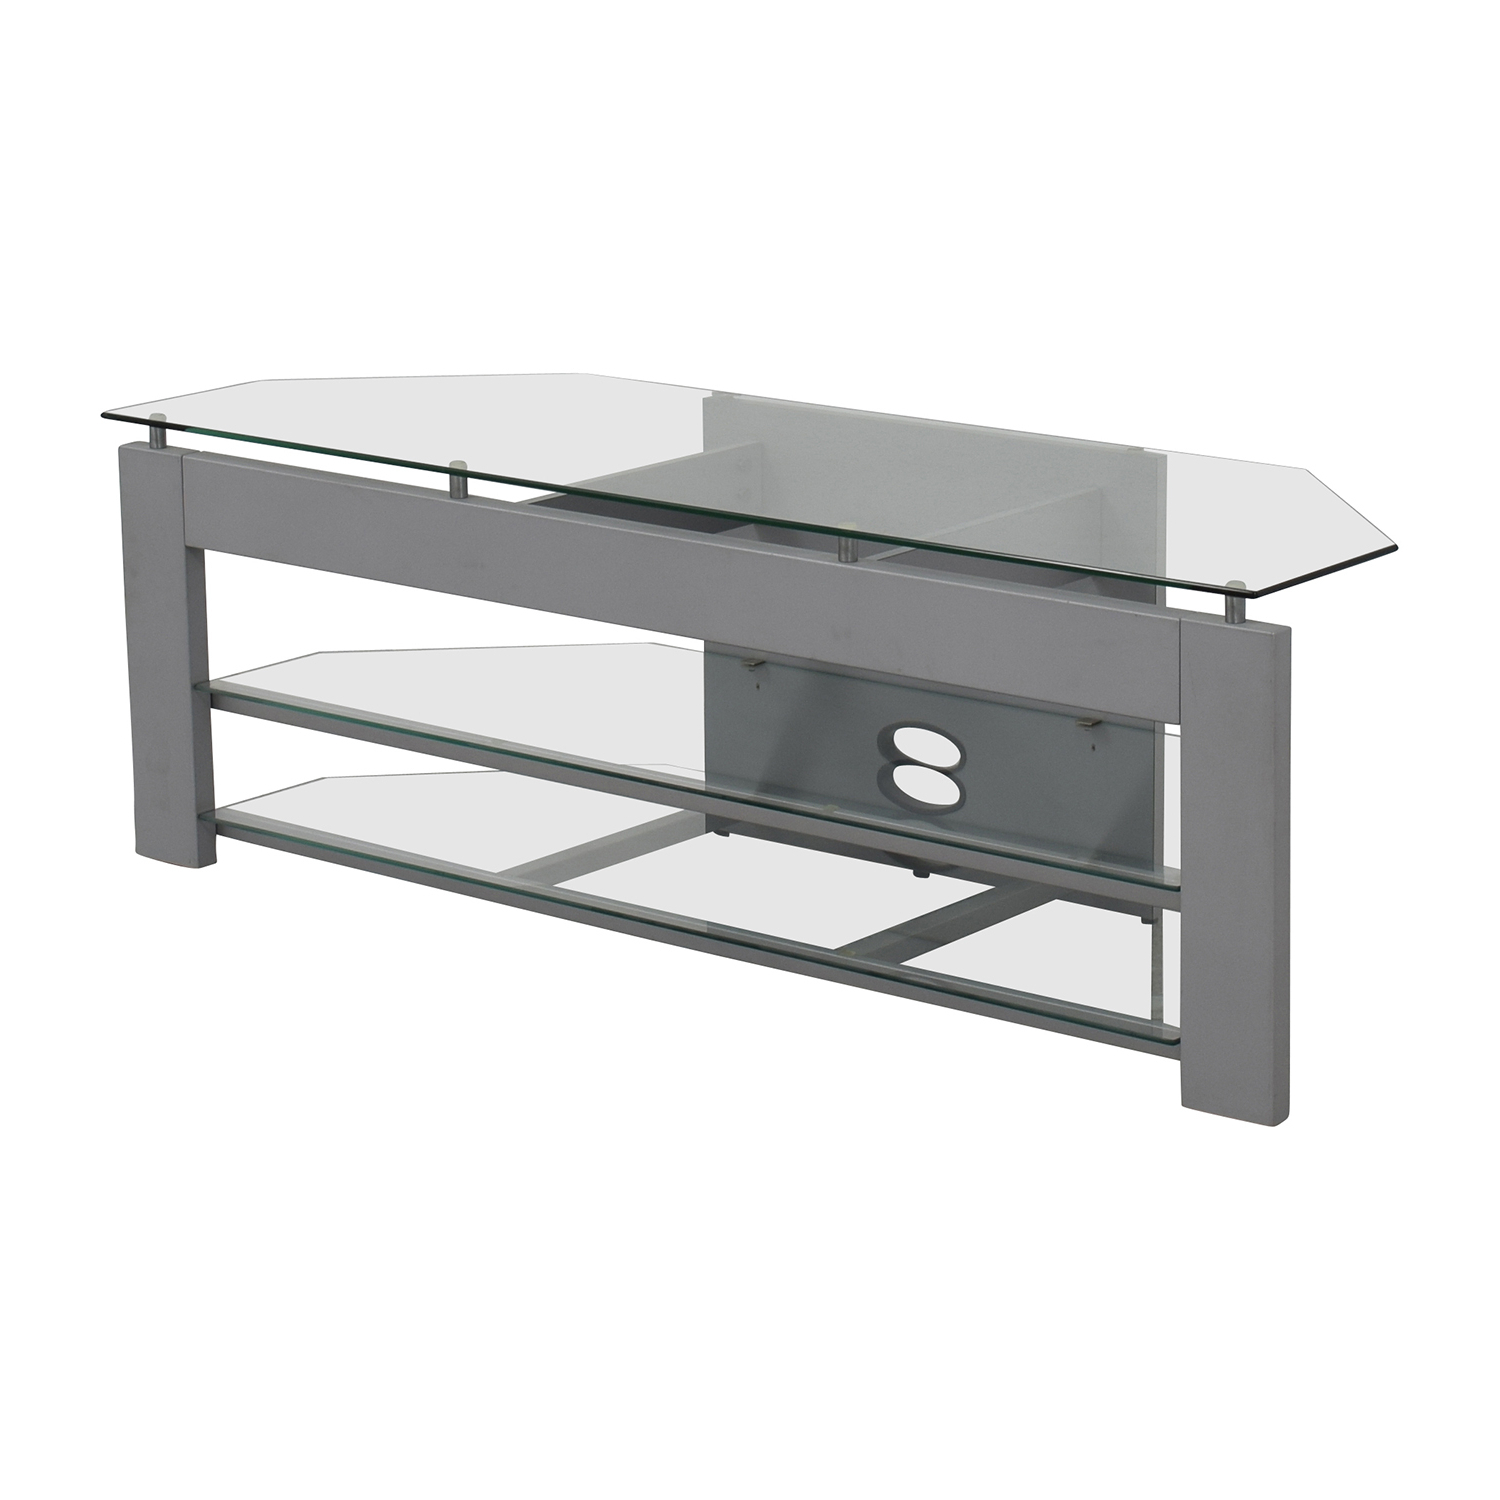 [%87% Off – Silver And Glass Tv Stand / Storage For Favorite Glass Tv Stands|Glass Tv Stands With Best And Newest 87% Off – Silver And Glass Tv Stand / Storage|Latest Glass Tv Stands With 87% Off – Silver And Glass Tv Stand / Storage|Well Known 87% Off – Silver And Glass Tv Stand / Storage With Glass Tv Stands%] (View 1 of 20)